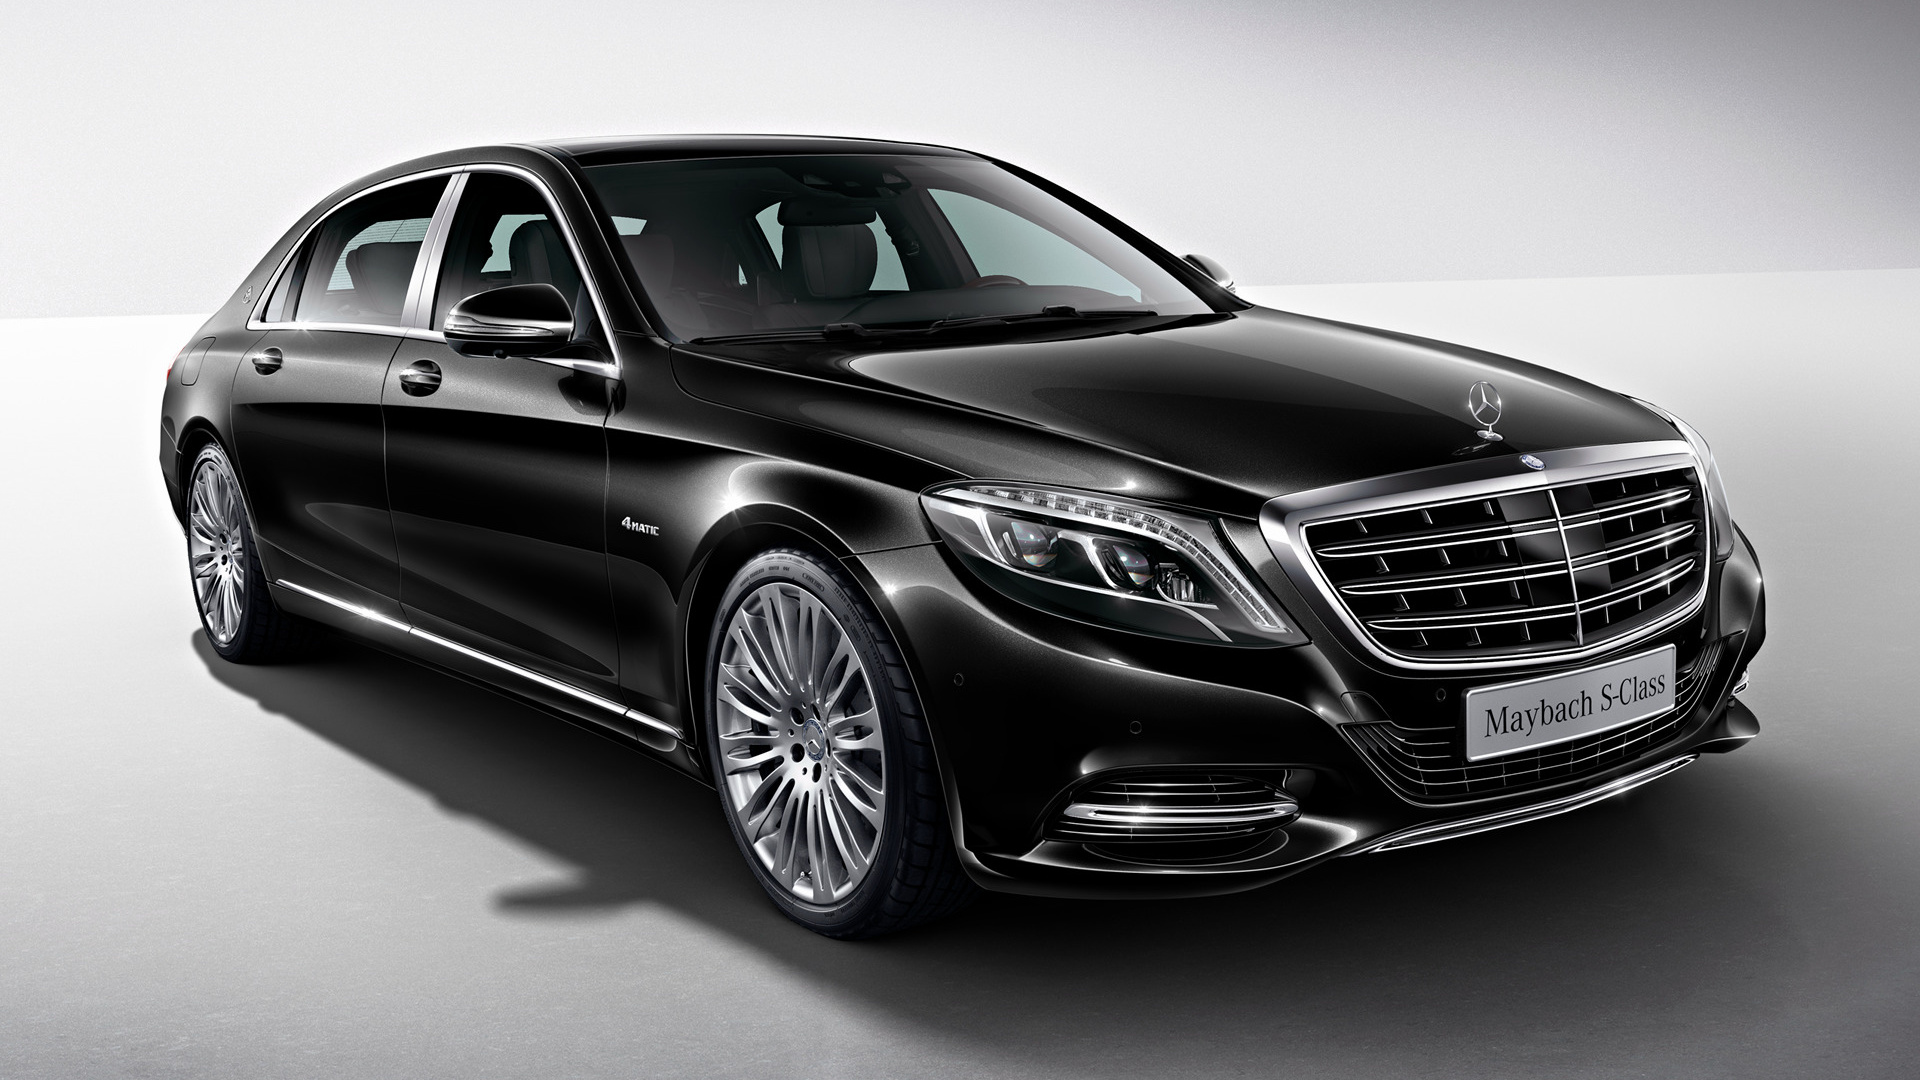 S Class Coupe >> 2015 Mercedes-Maybach S-Class - Wallpapers and HD Images ...